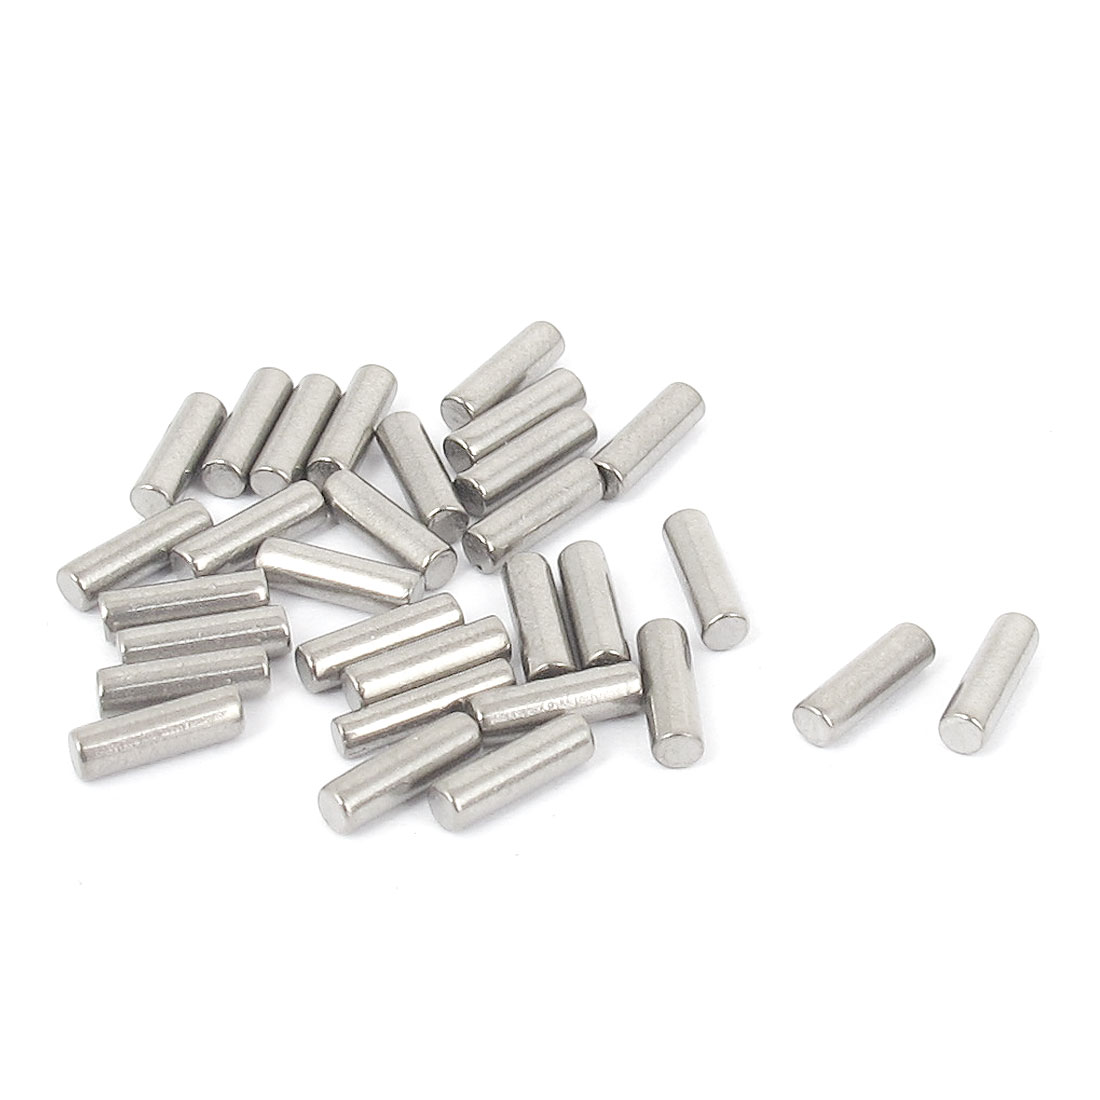 2.5mm x 8mm 304 Stainless Steel Dowel Pins Fasten Elements Silver Tone 30pcs